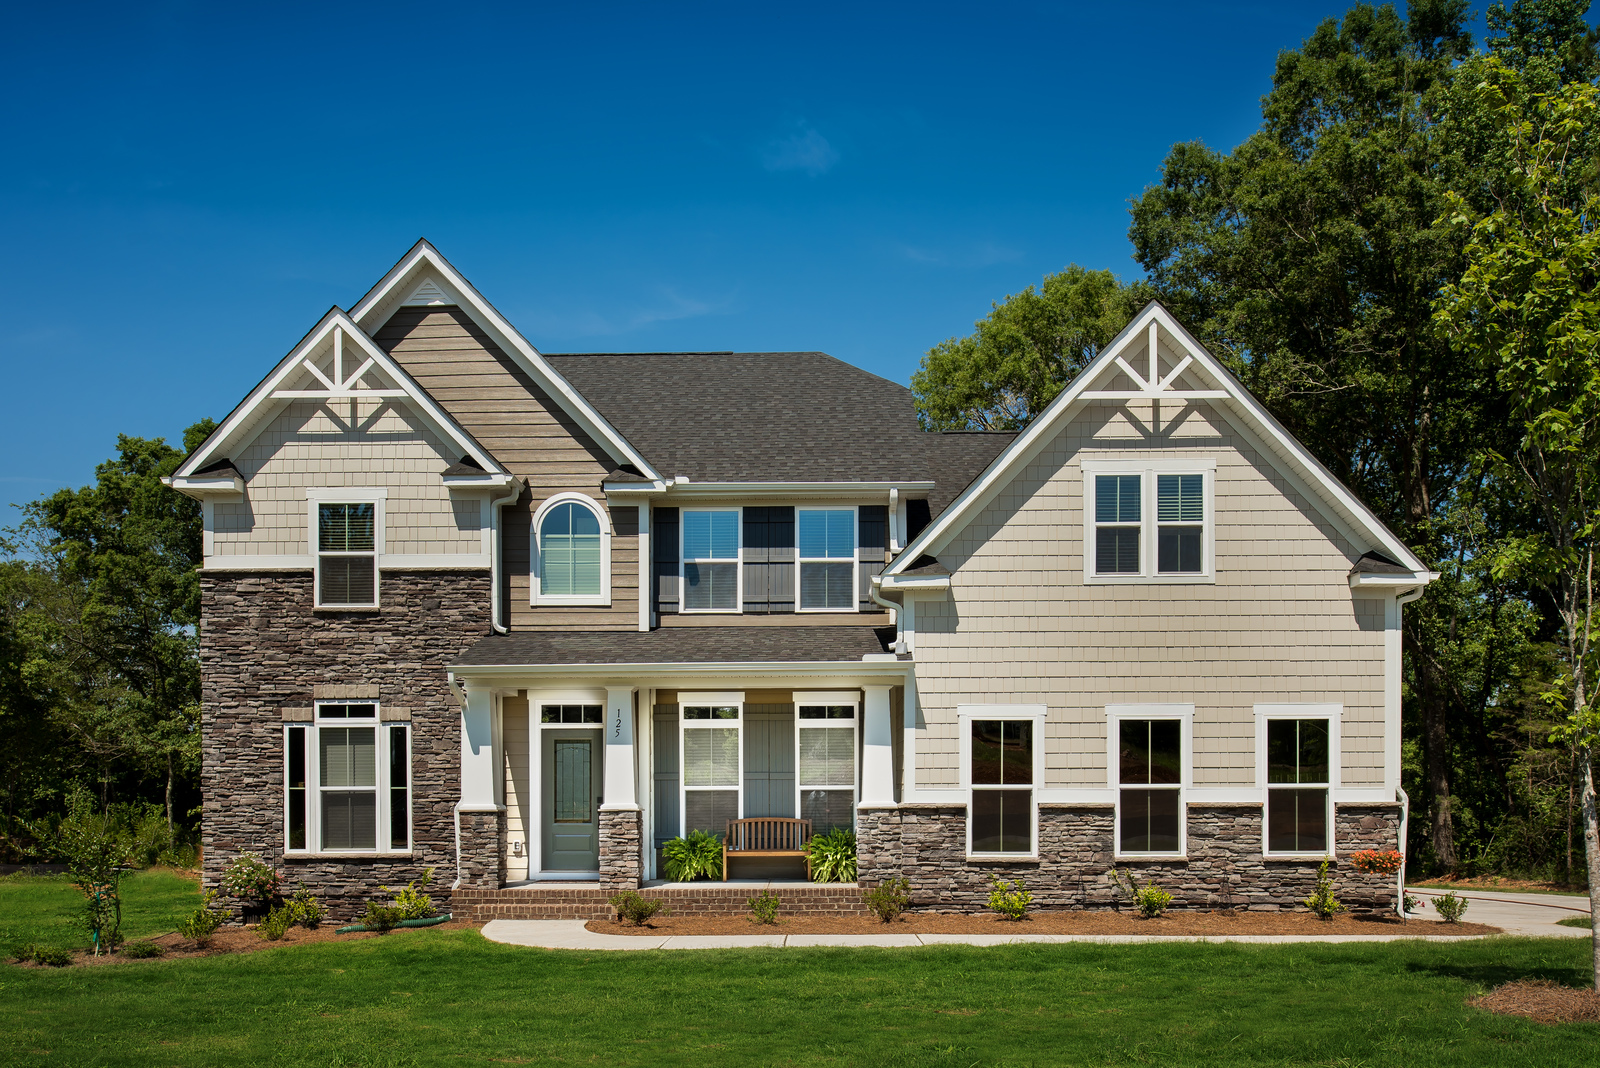 New Homes for sale at Magnolia Farms in Piedmont, SC within